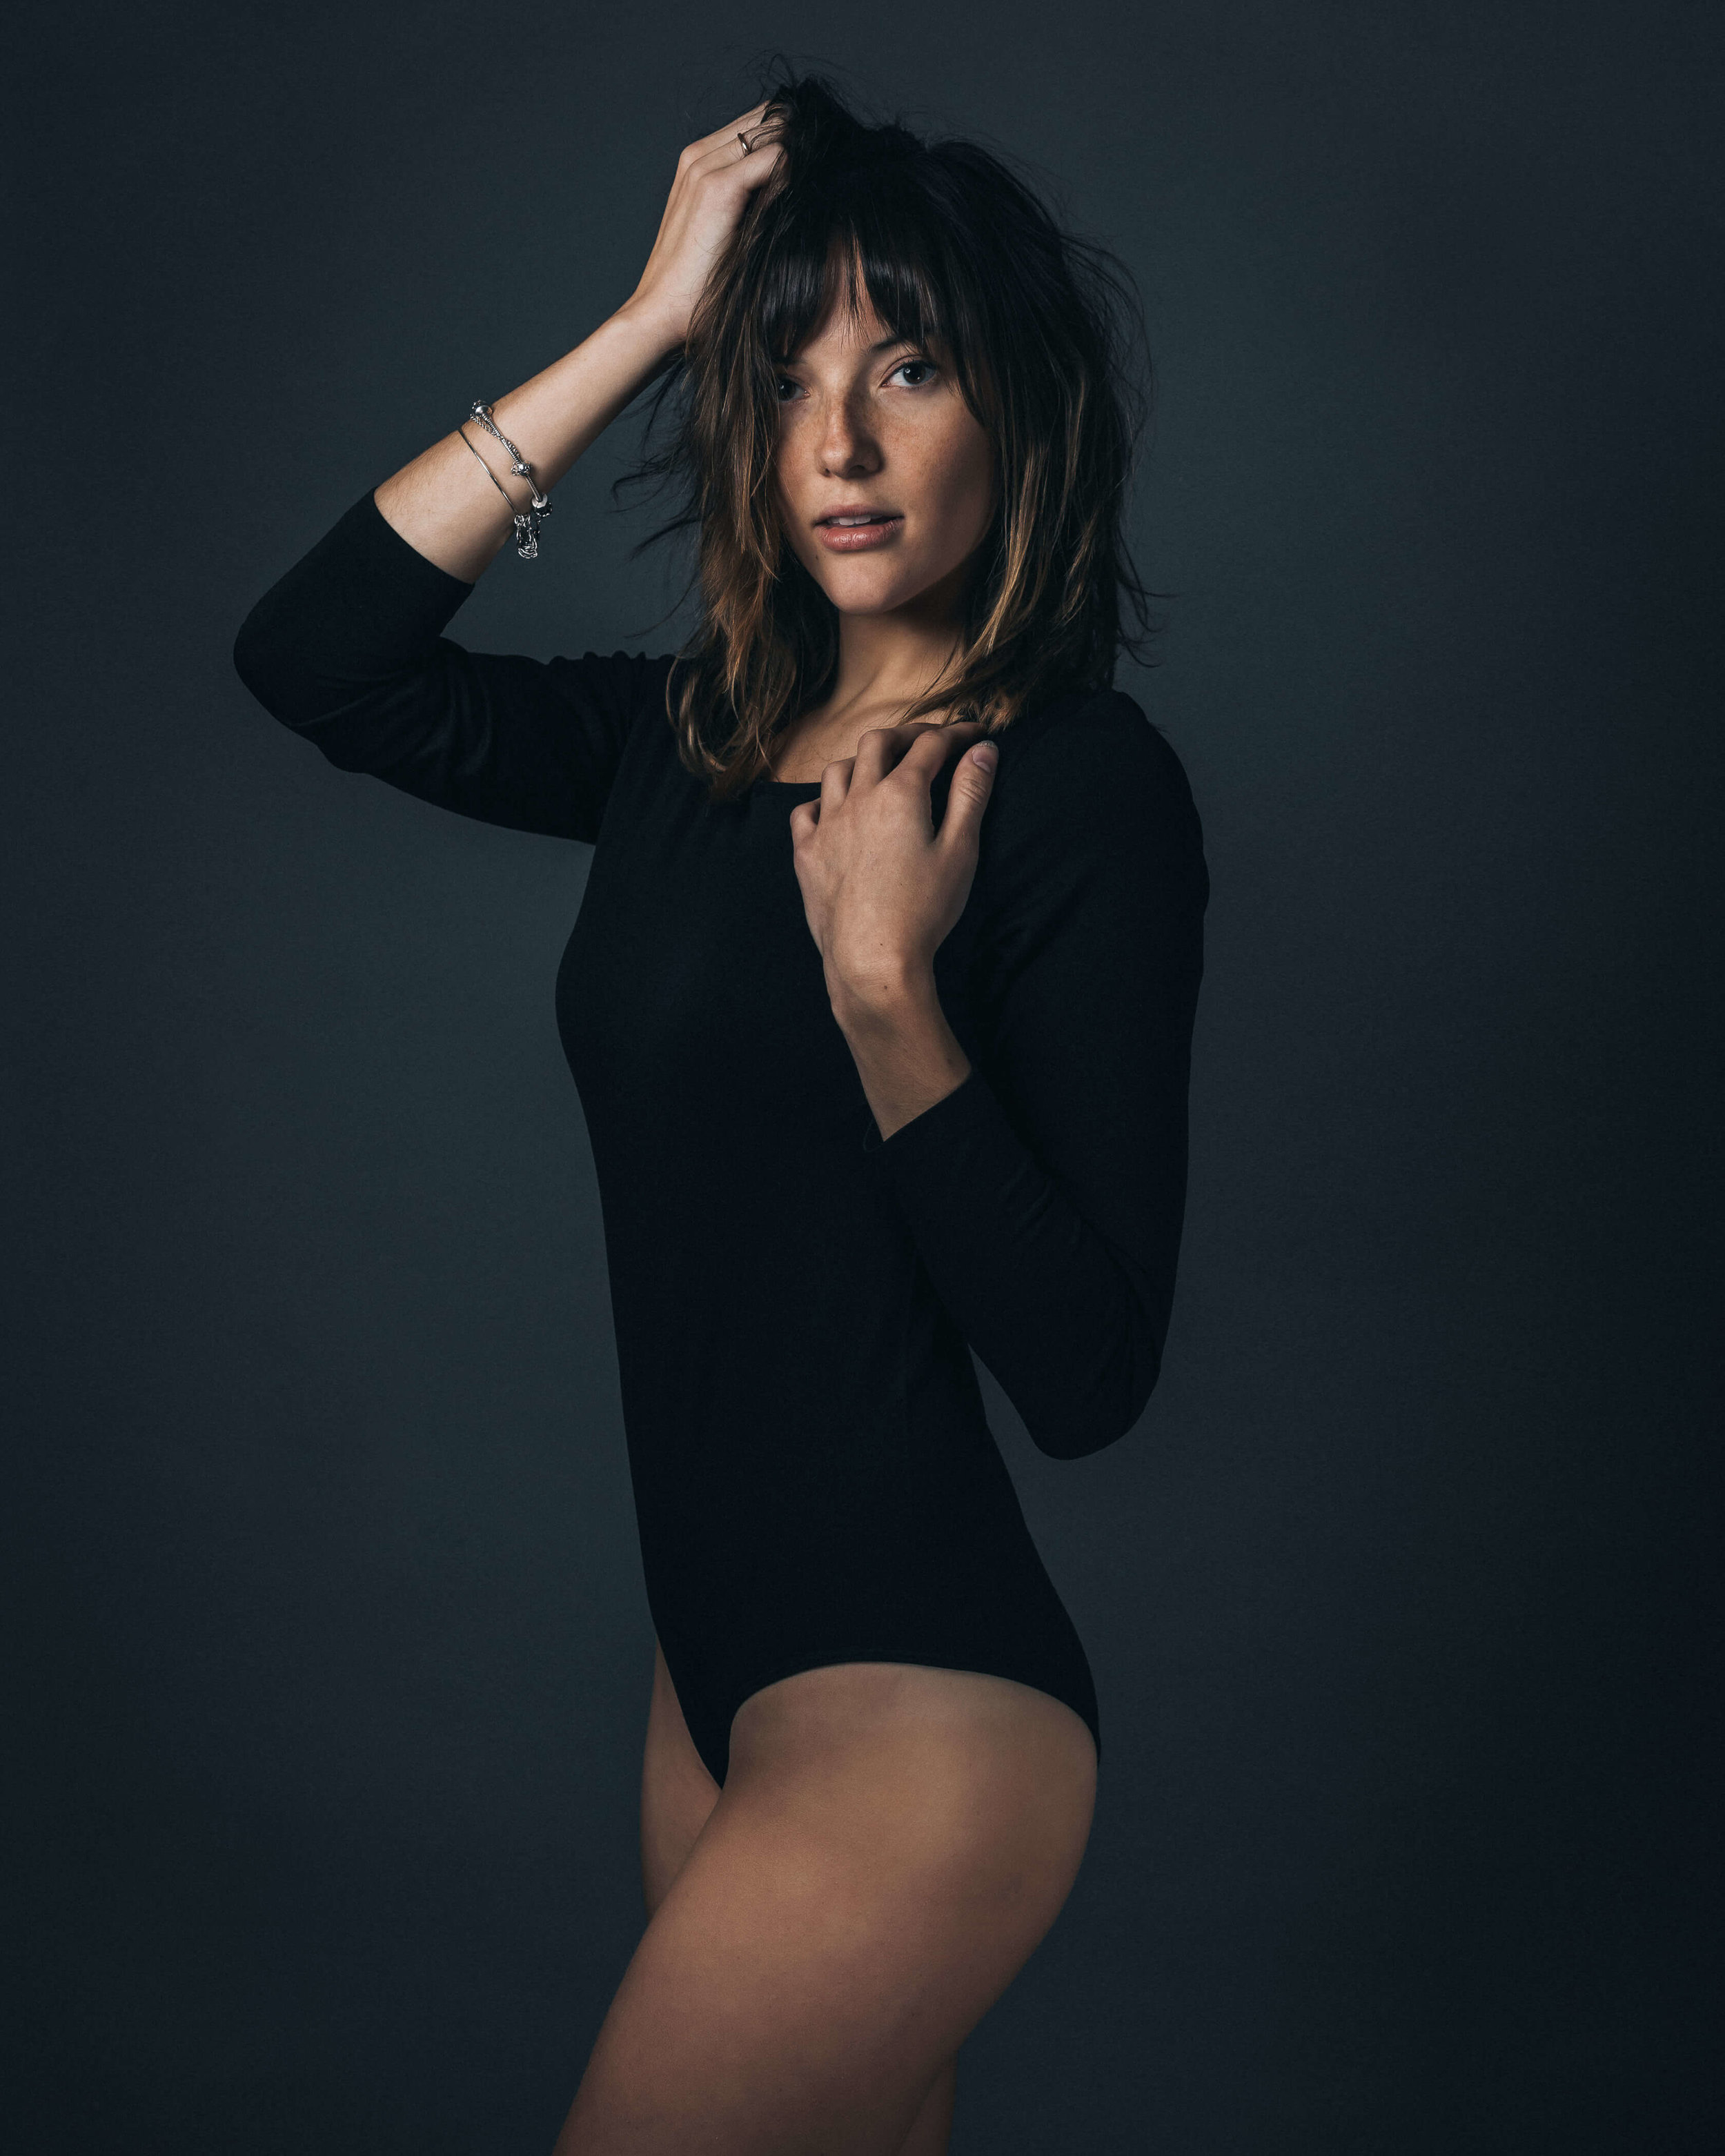 studio portrait of female model in black unitard